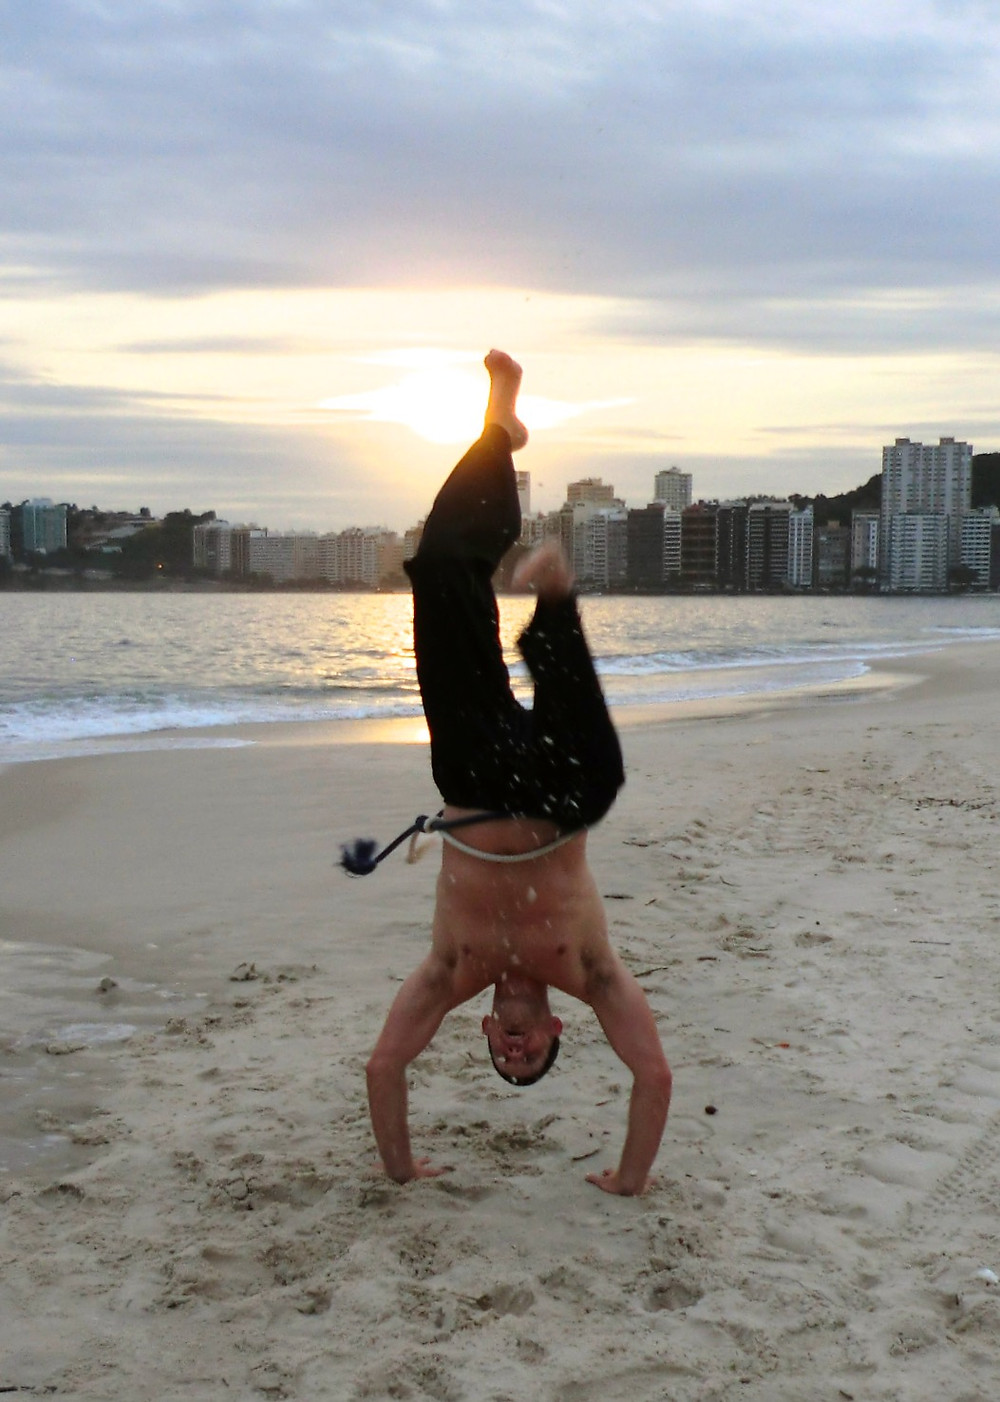 Practice on the beach, Niter, Brazil, 2013